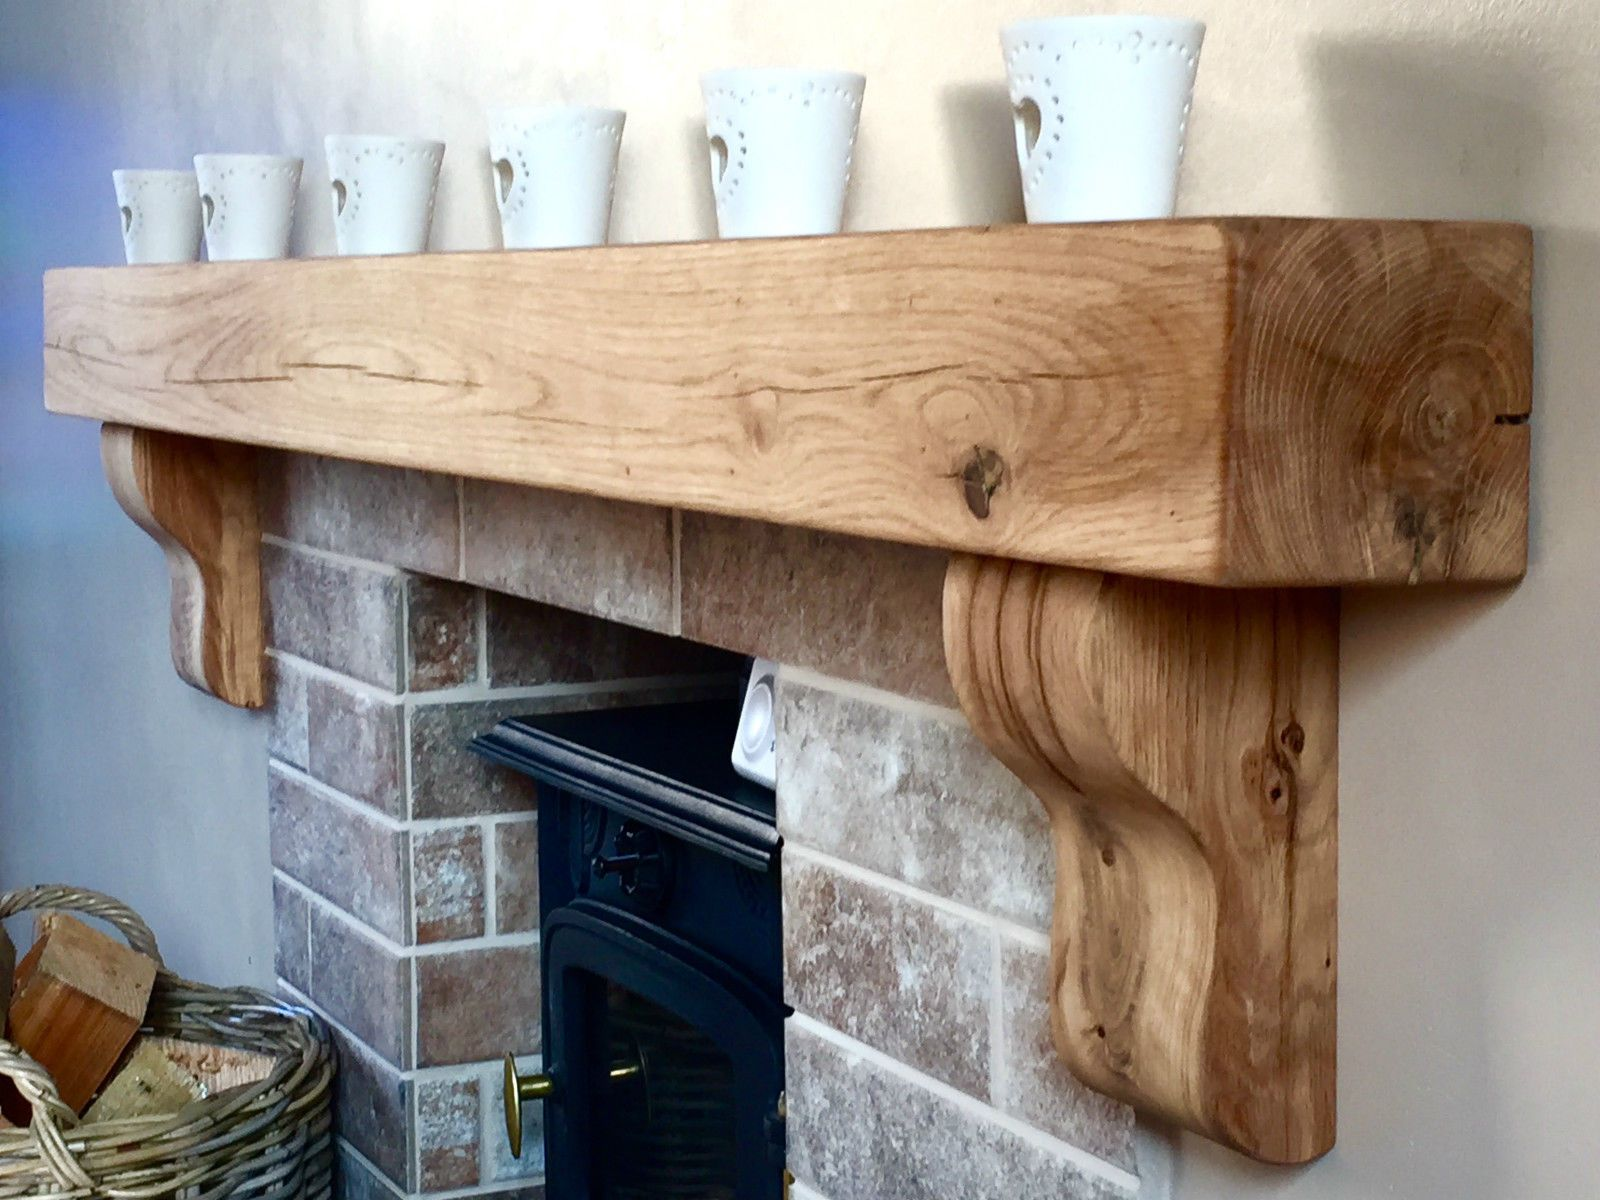 details about oak beam with corbels floating mantel shelf solid fireplace bathroom small corner wooden kitchen hanging hooks canadian tire vacuum closed shelves rustic bath shower